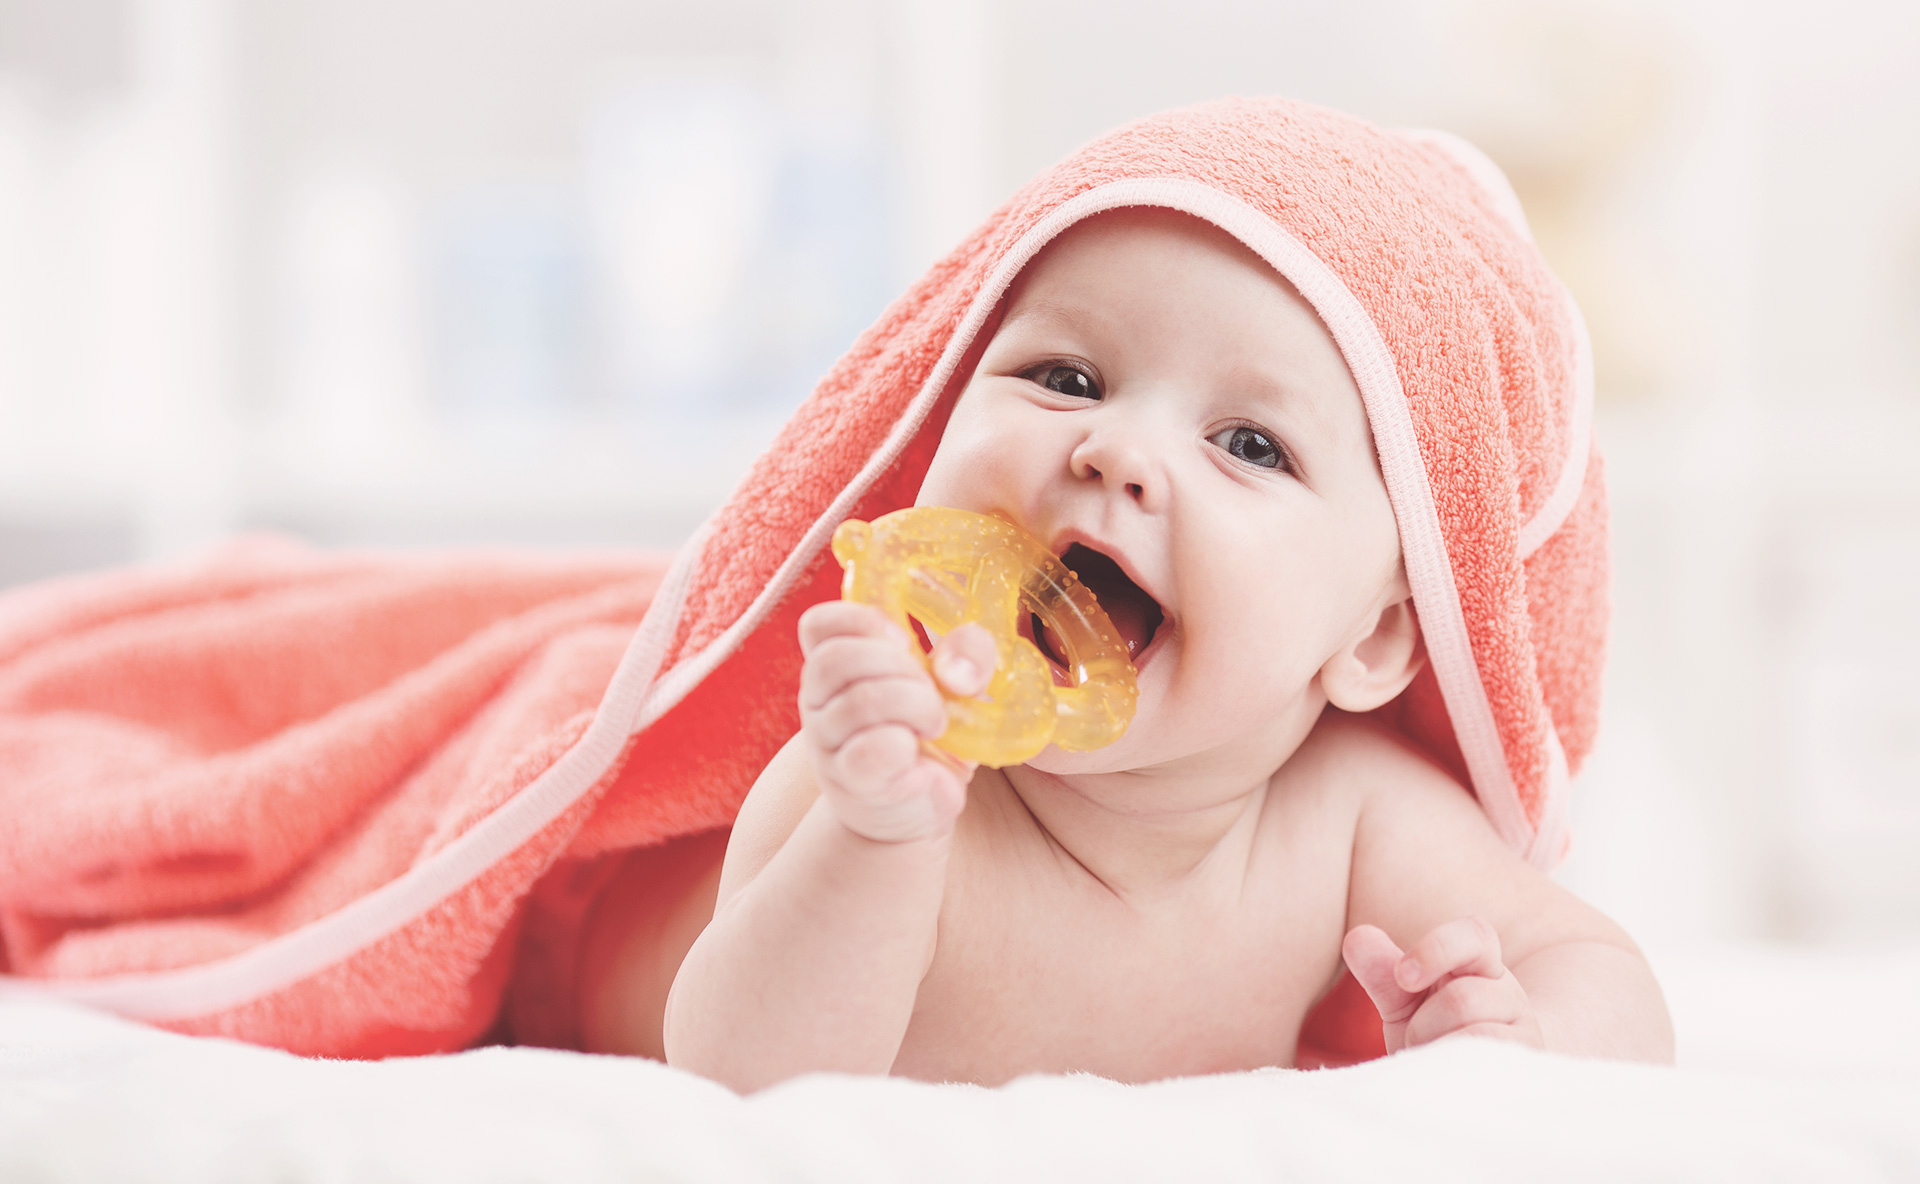 when do babies start teething? what are the signs?